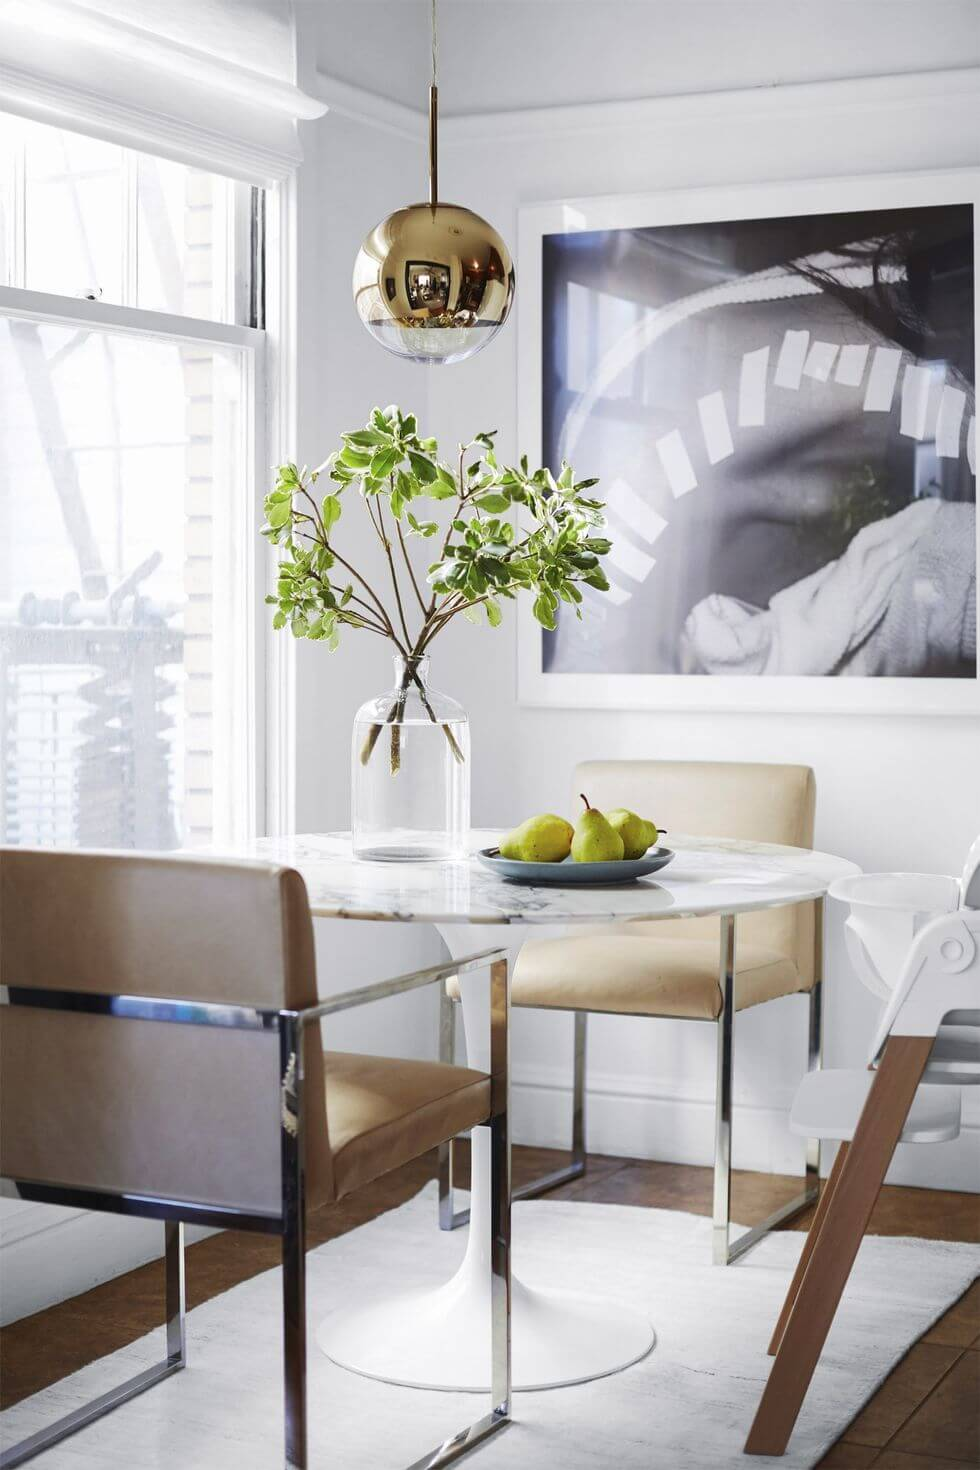 BOLD STYLE DINING ROOM SMALL SPACE IDEAS